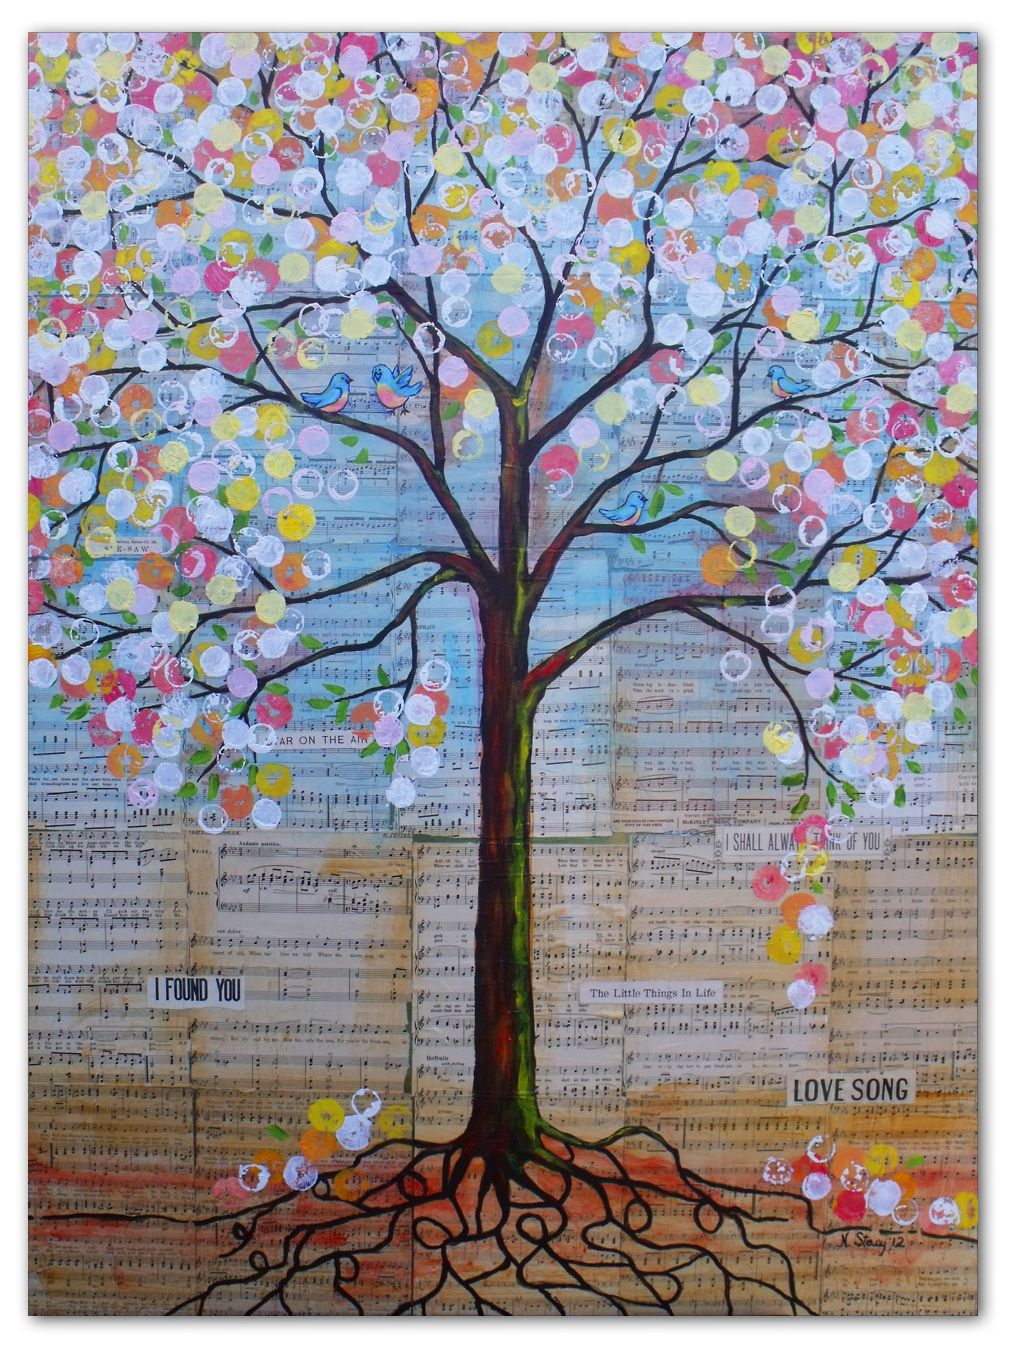 Love this tree art for 4th grade class coop project. Have each kid design some of the circle leaves. Love the sheet music background too.